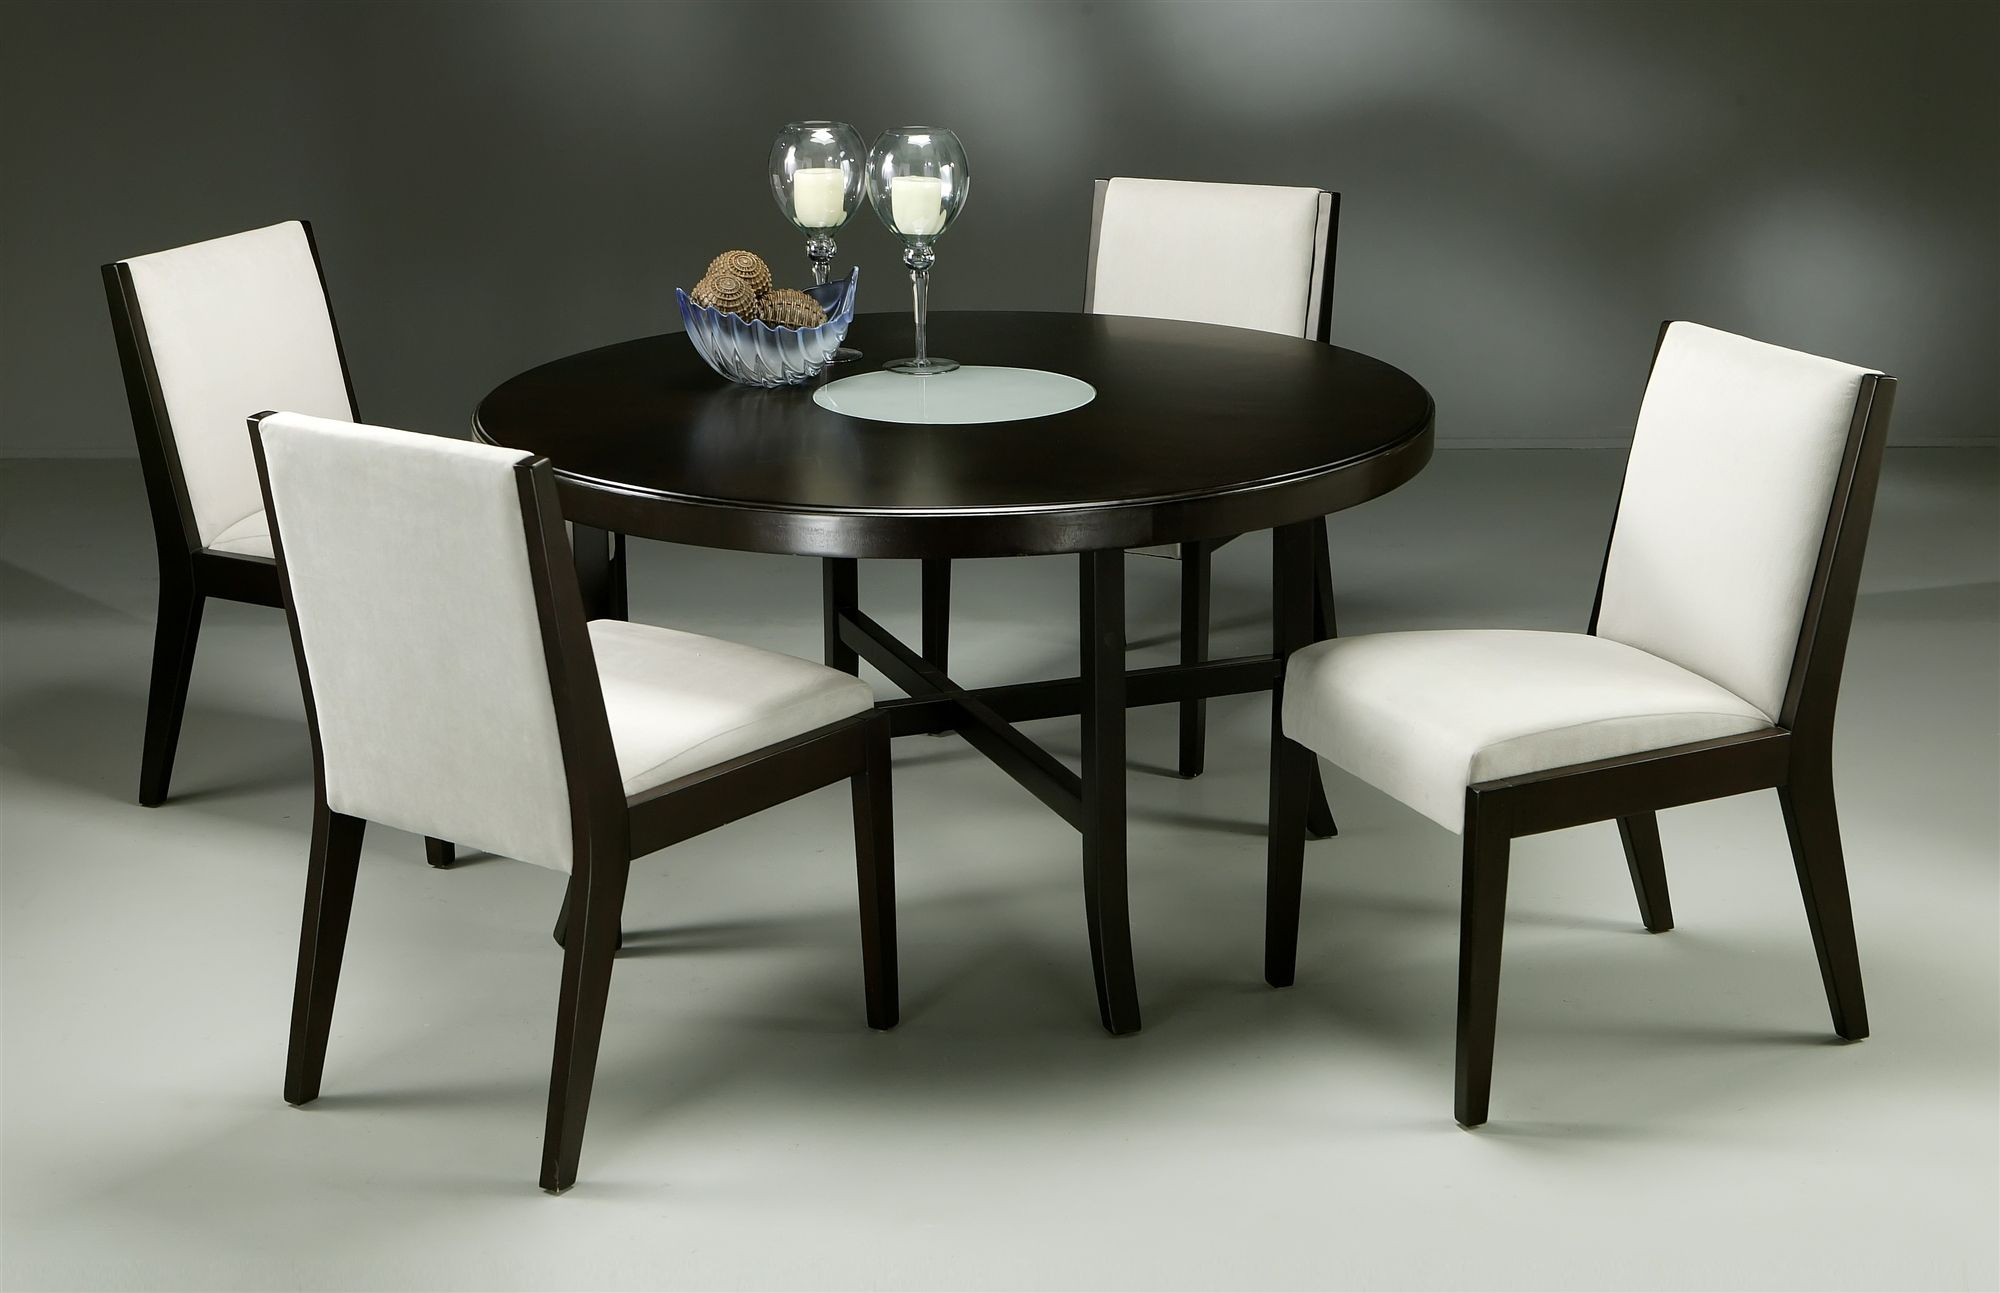 Round game tables - Wooden Round Game Table Jakarta Round Wood Dining Table In Palomino Finish W 4 Fendini